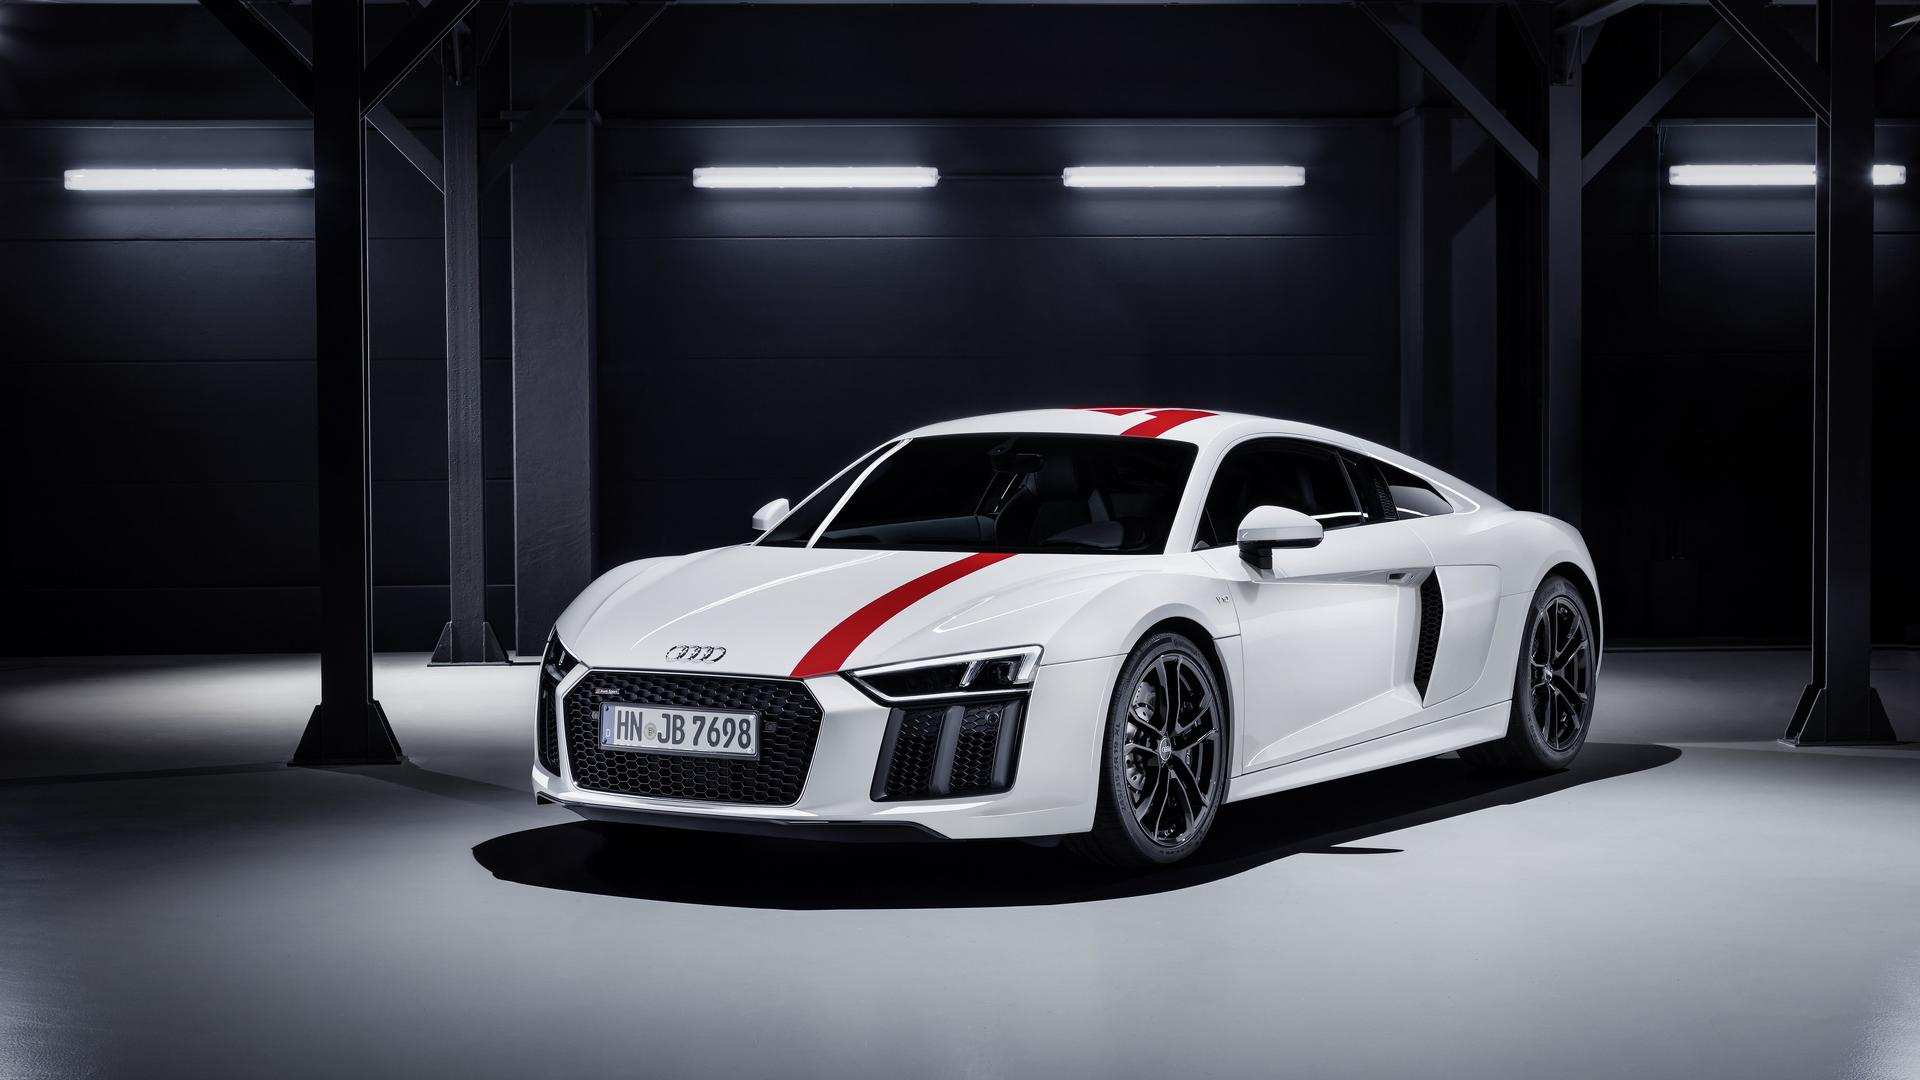 43 New 2020 Audi R8 Gt Concept And Review